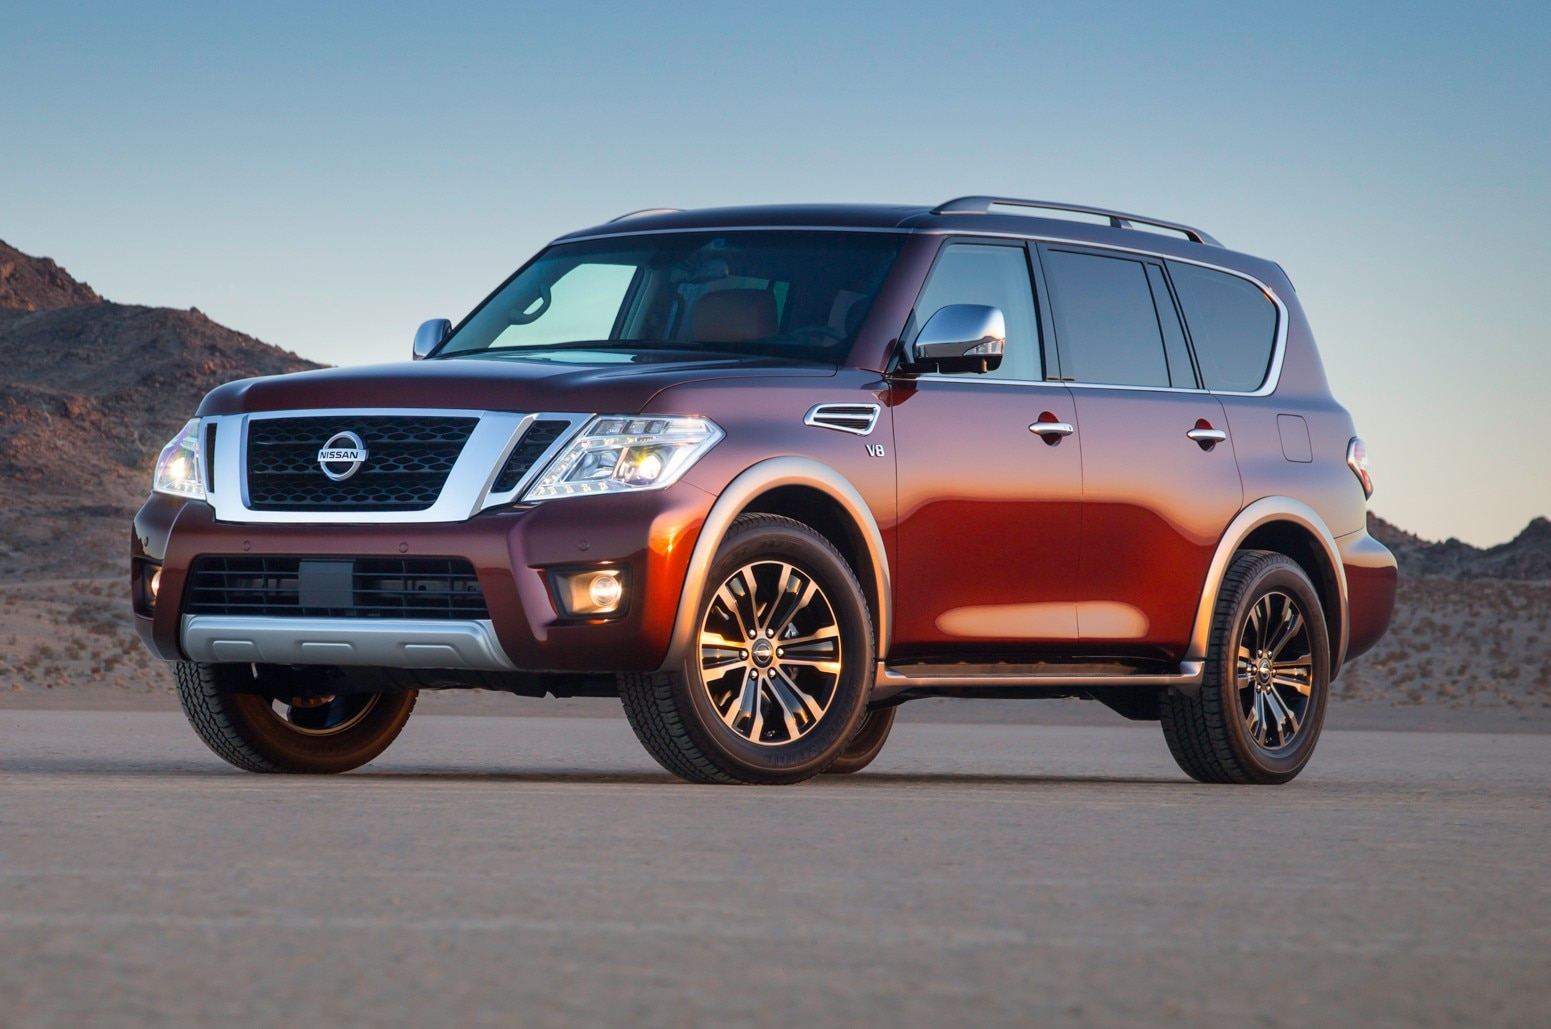 up close and personal with the 2017 nissan armada platinum. Black Bedroom Furniture Sets. Home Design Ideas